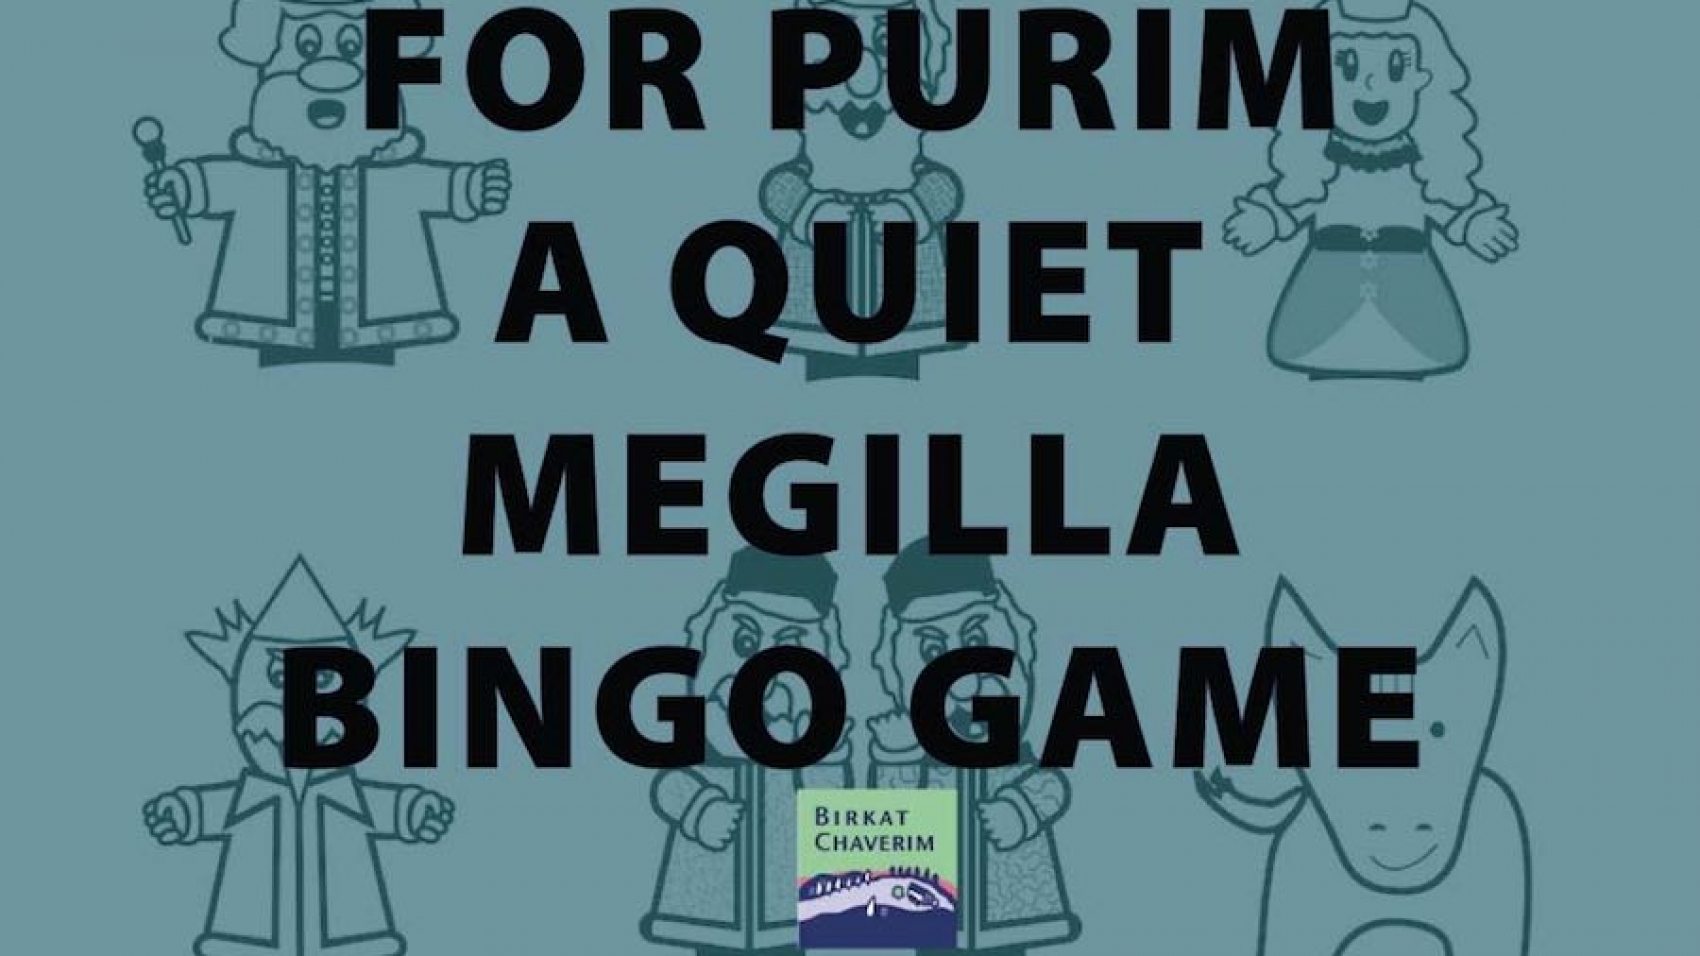 For Purim a Quiet Megilla Bingo Game birkatchaverim.com on Purim character backdrop.